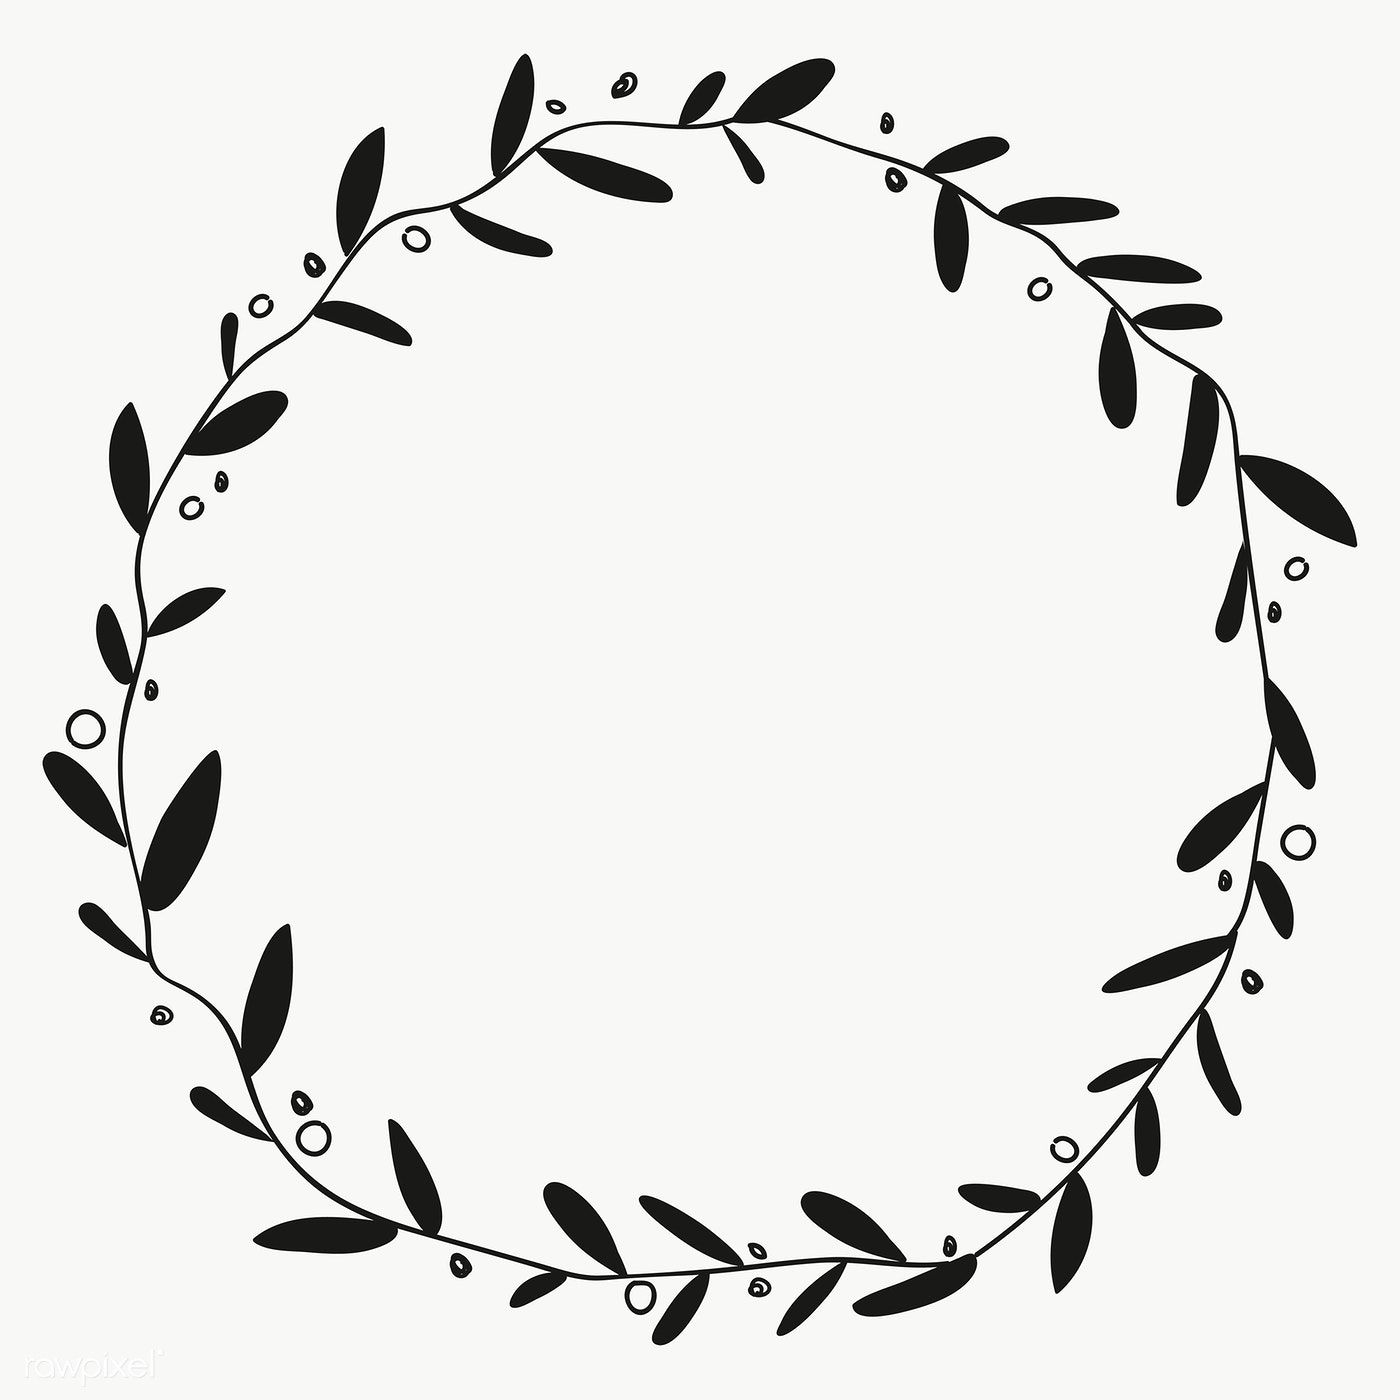 Black Wreath On Background Transparent Png Free Image By Rawpixel Com Marinemynt Black Wreath Gold Picture Frames Cross Stitch Fonts